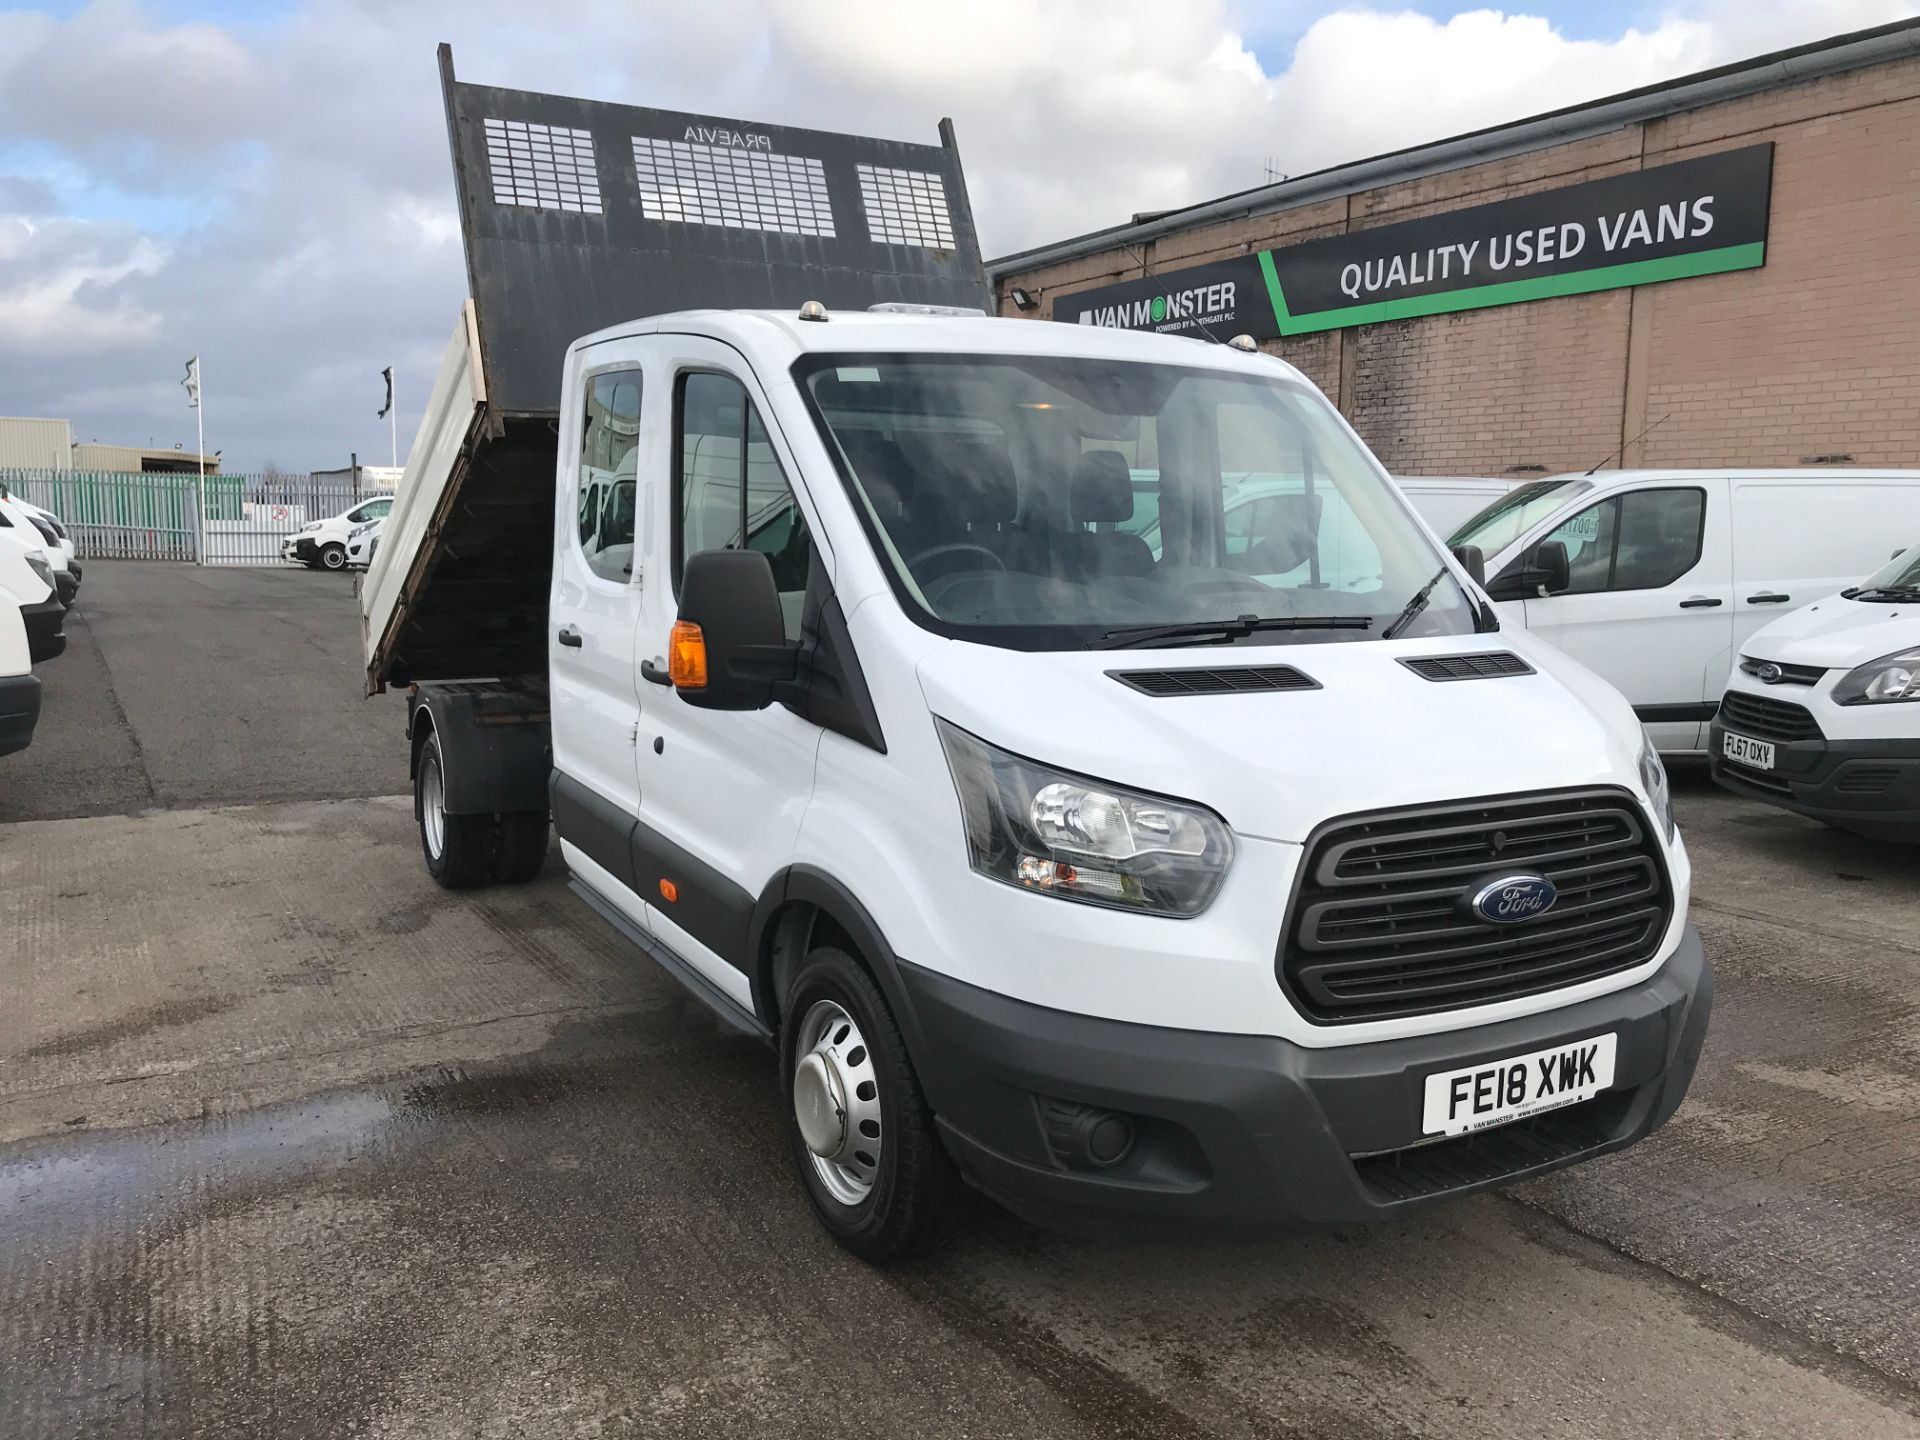 2018 Ford Transit T350 DOUBLE CAB TIPPER 130PS EURO 5 (FE18XWK)